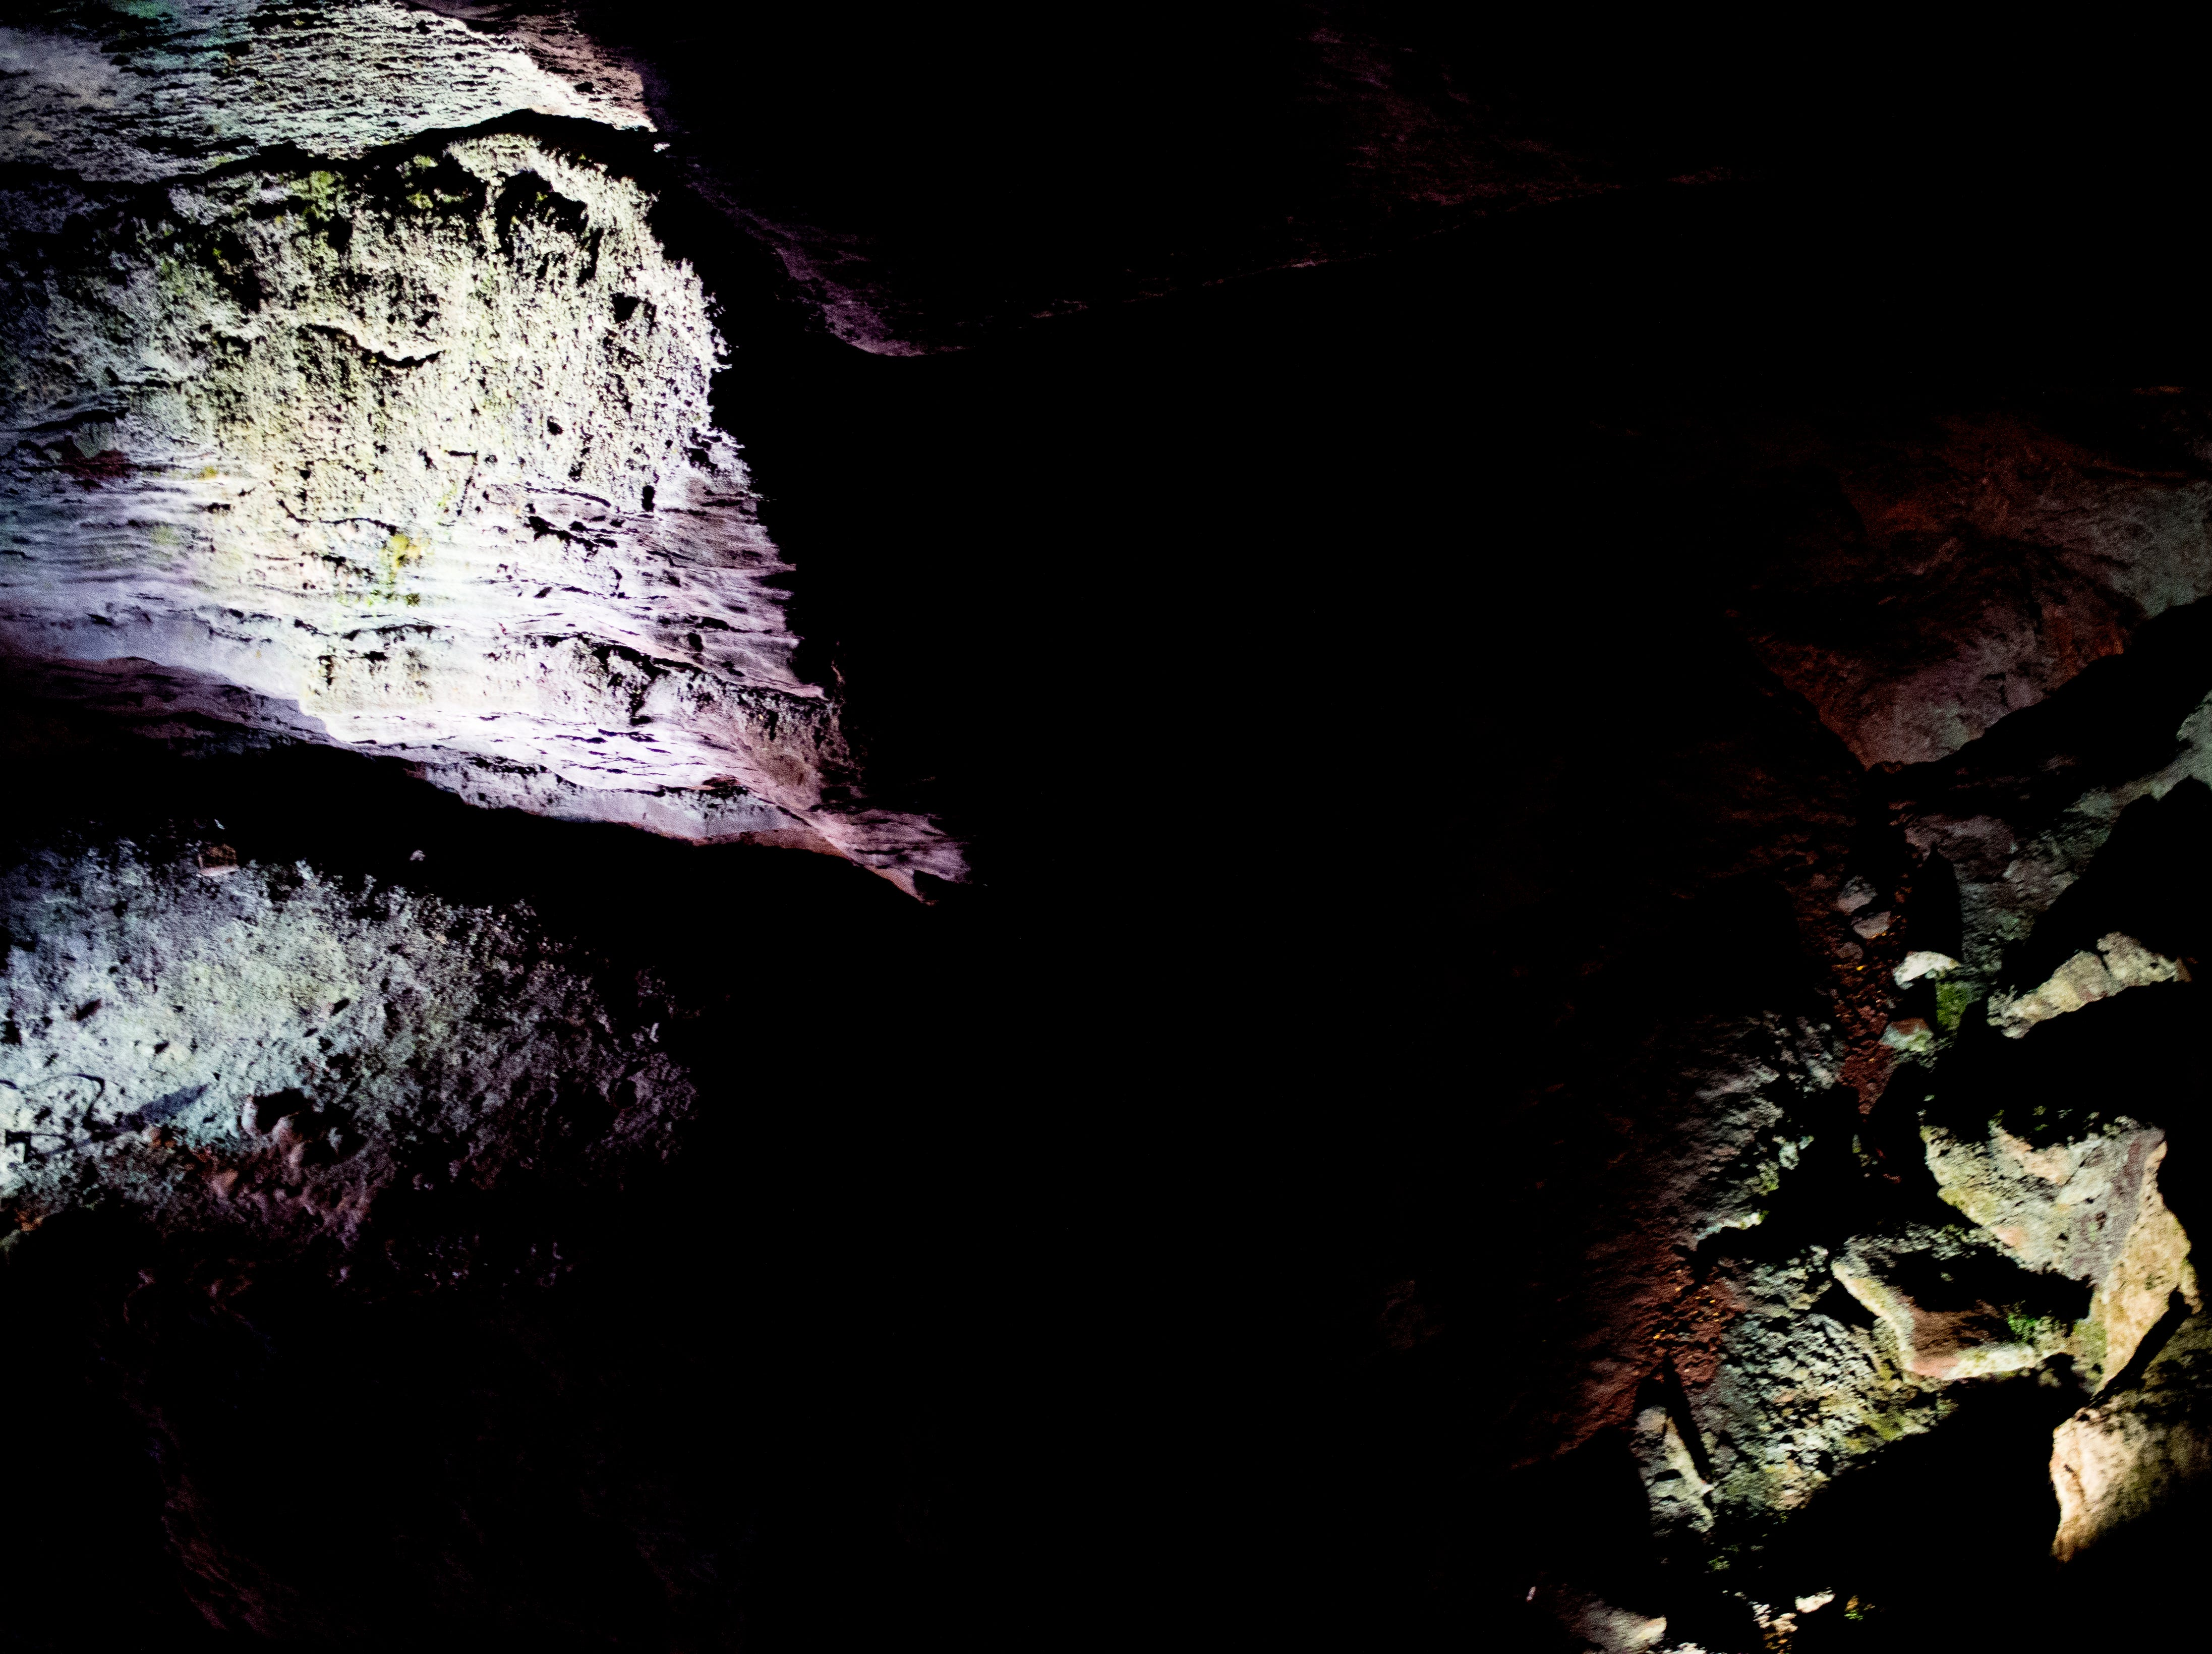 Rock formations at the Lost Sea Adventure underground cave attraction outside of Sweetwater, Tennessee on Wednesday, August 15, 2018. The cave system dates back some 20,000 years and today features points of interests like an old moonshine still, rock formations, Confederate Army graffiti and the popular boat ride in a natural lake stocked with 200 rainbow trout.